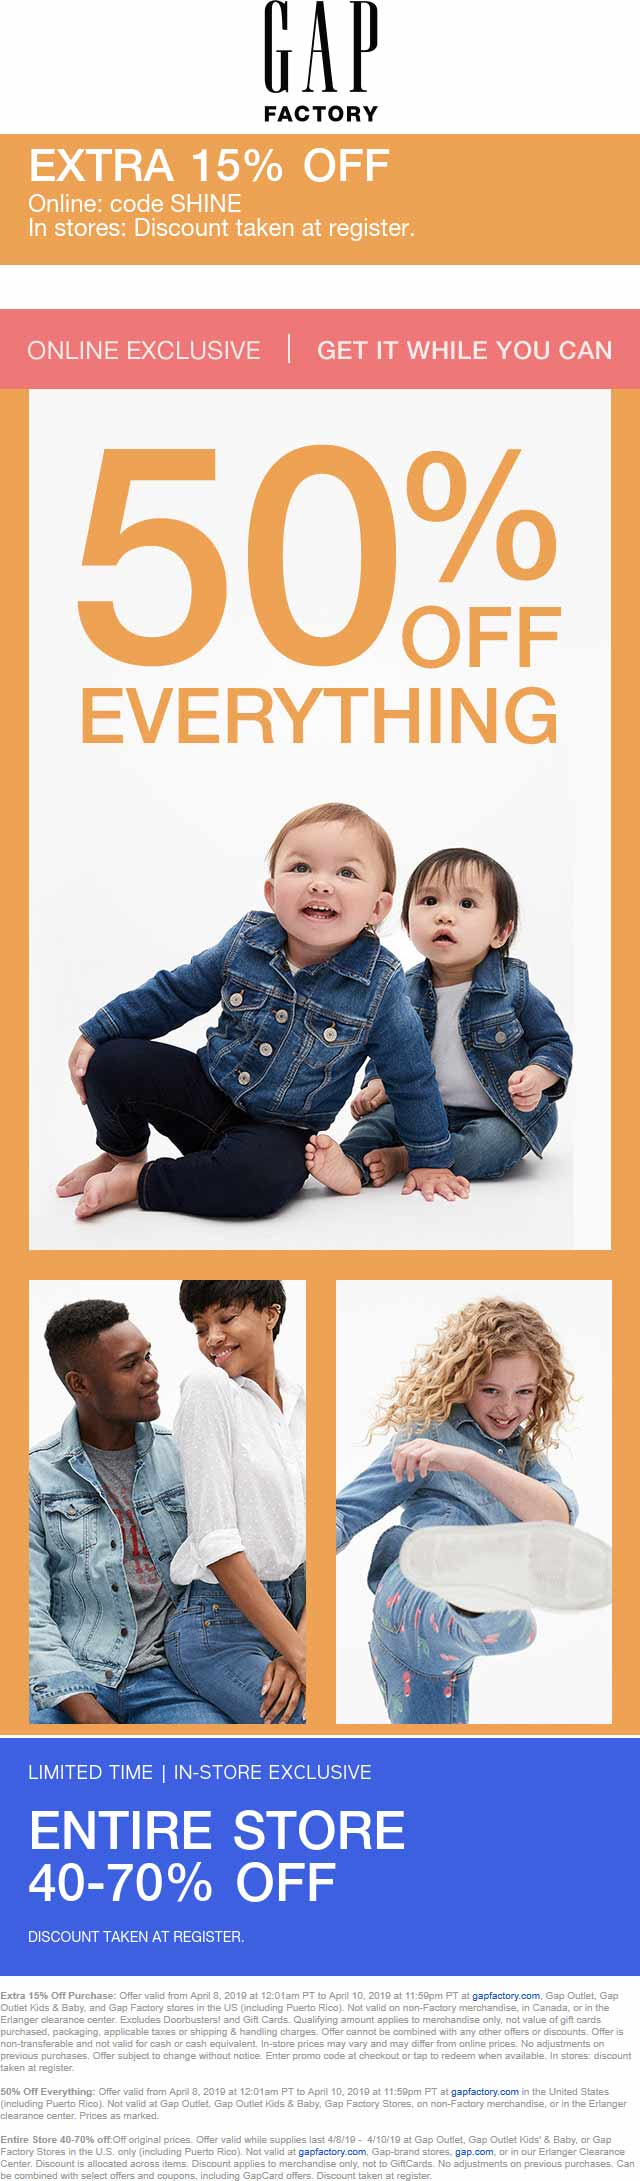 Gap Factory Coupon May 2019 50-70% off everything at Gap Factory, or online via promo code SHINE